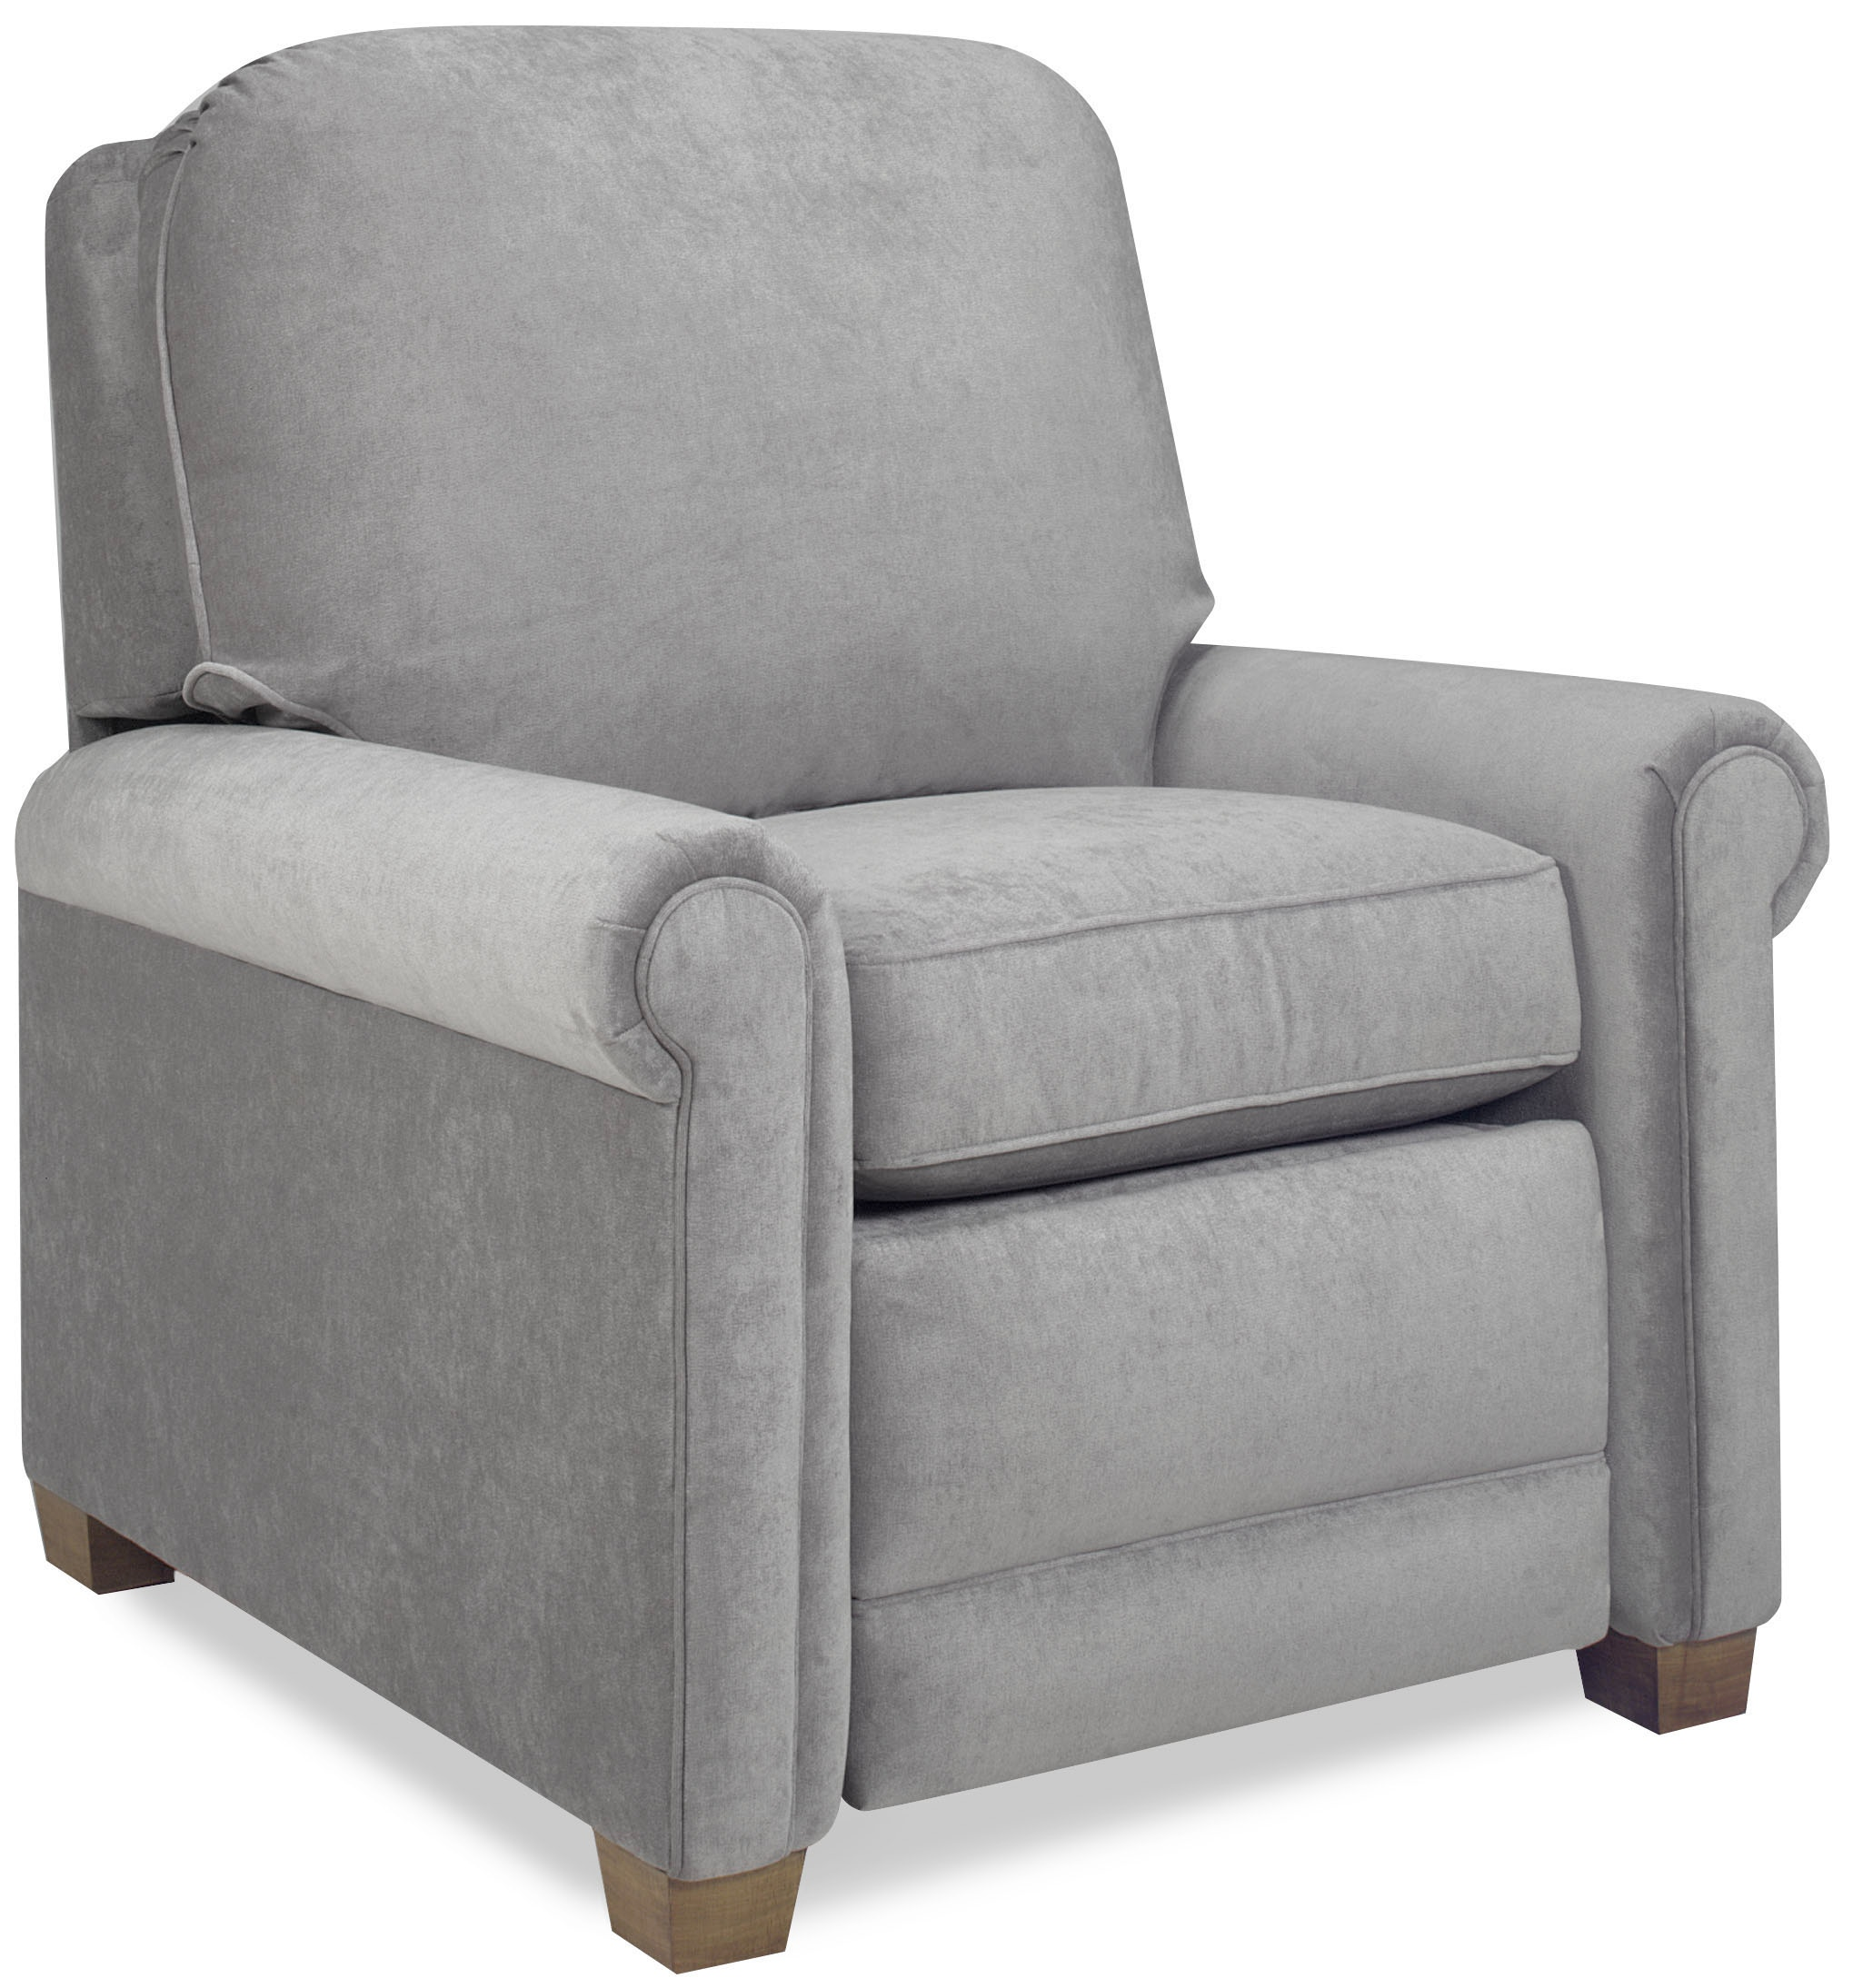 murphy chair company queen anne covers ireland temple living room dakota arm 107 eller and owens